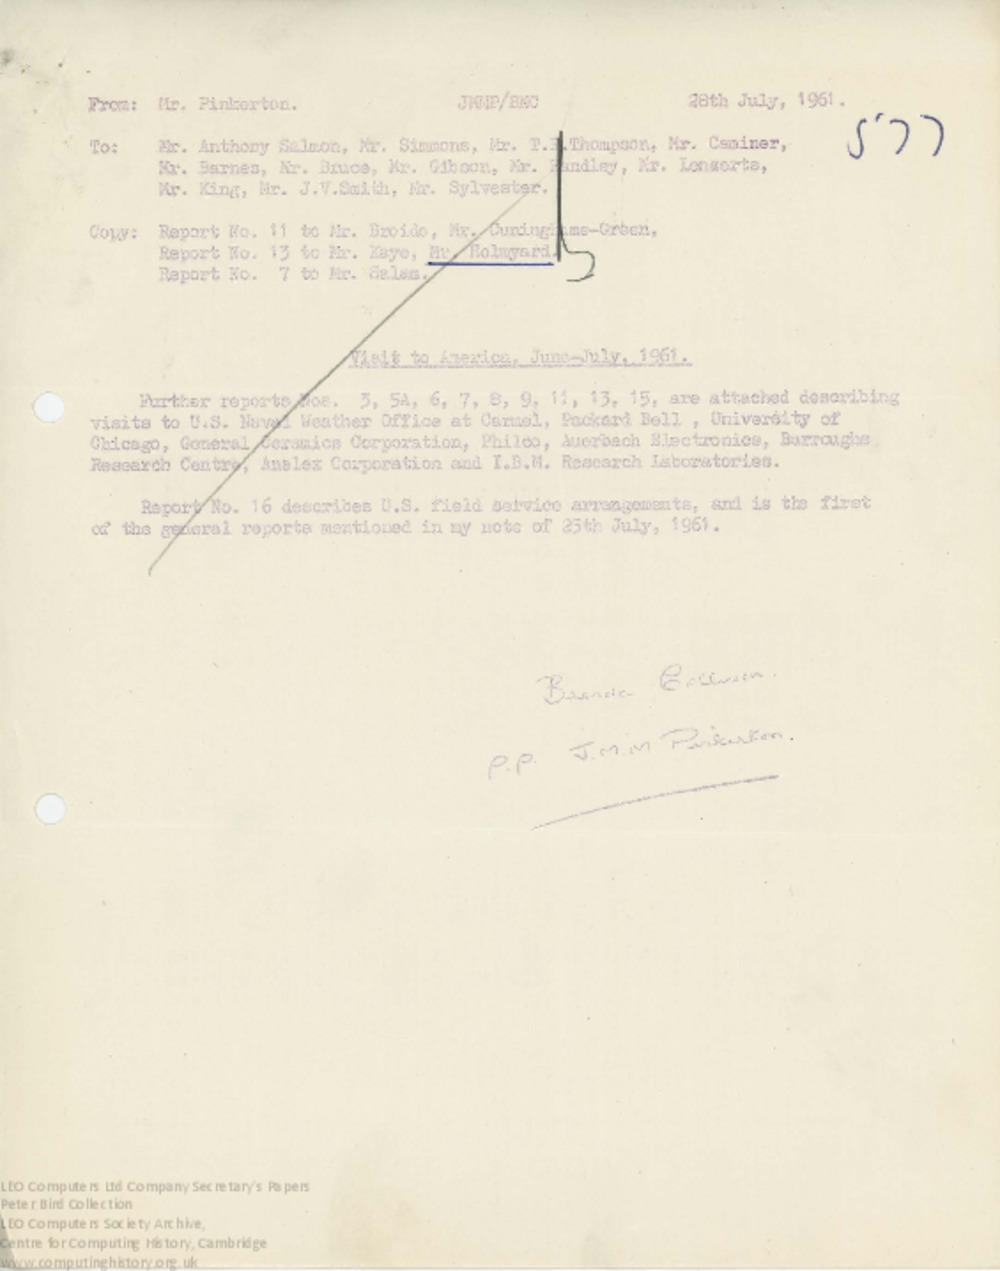 Article: 62852 Report on Visit to Anelex Corporation, Jul 1961